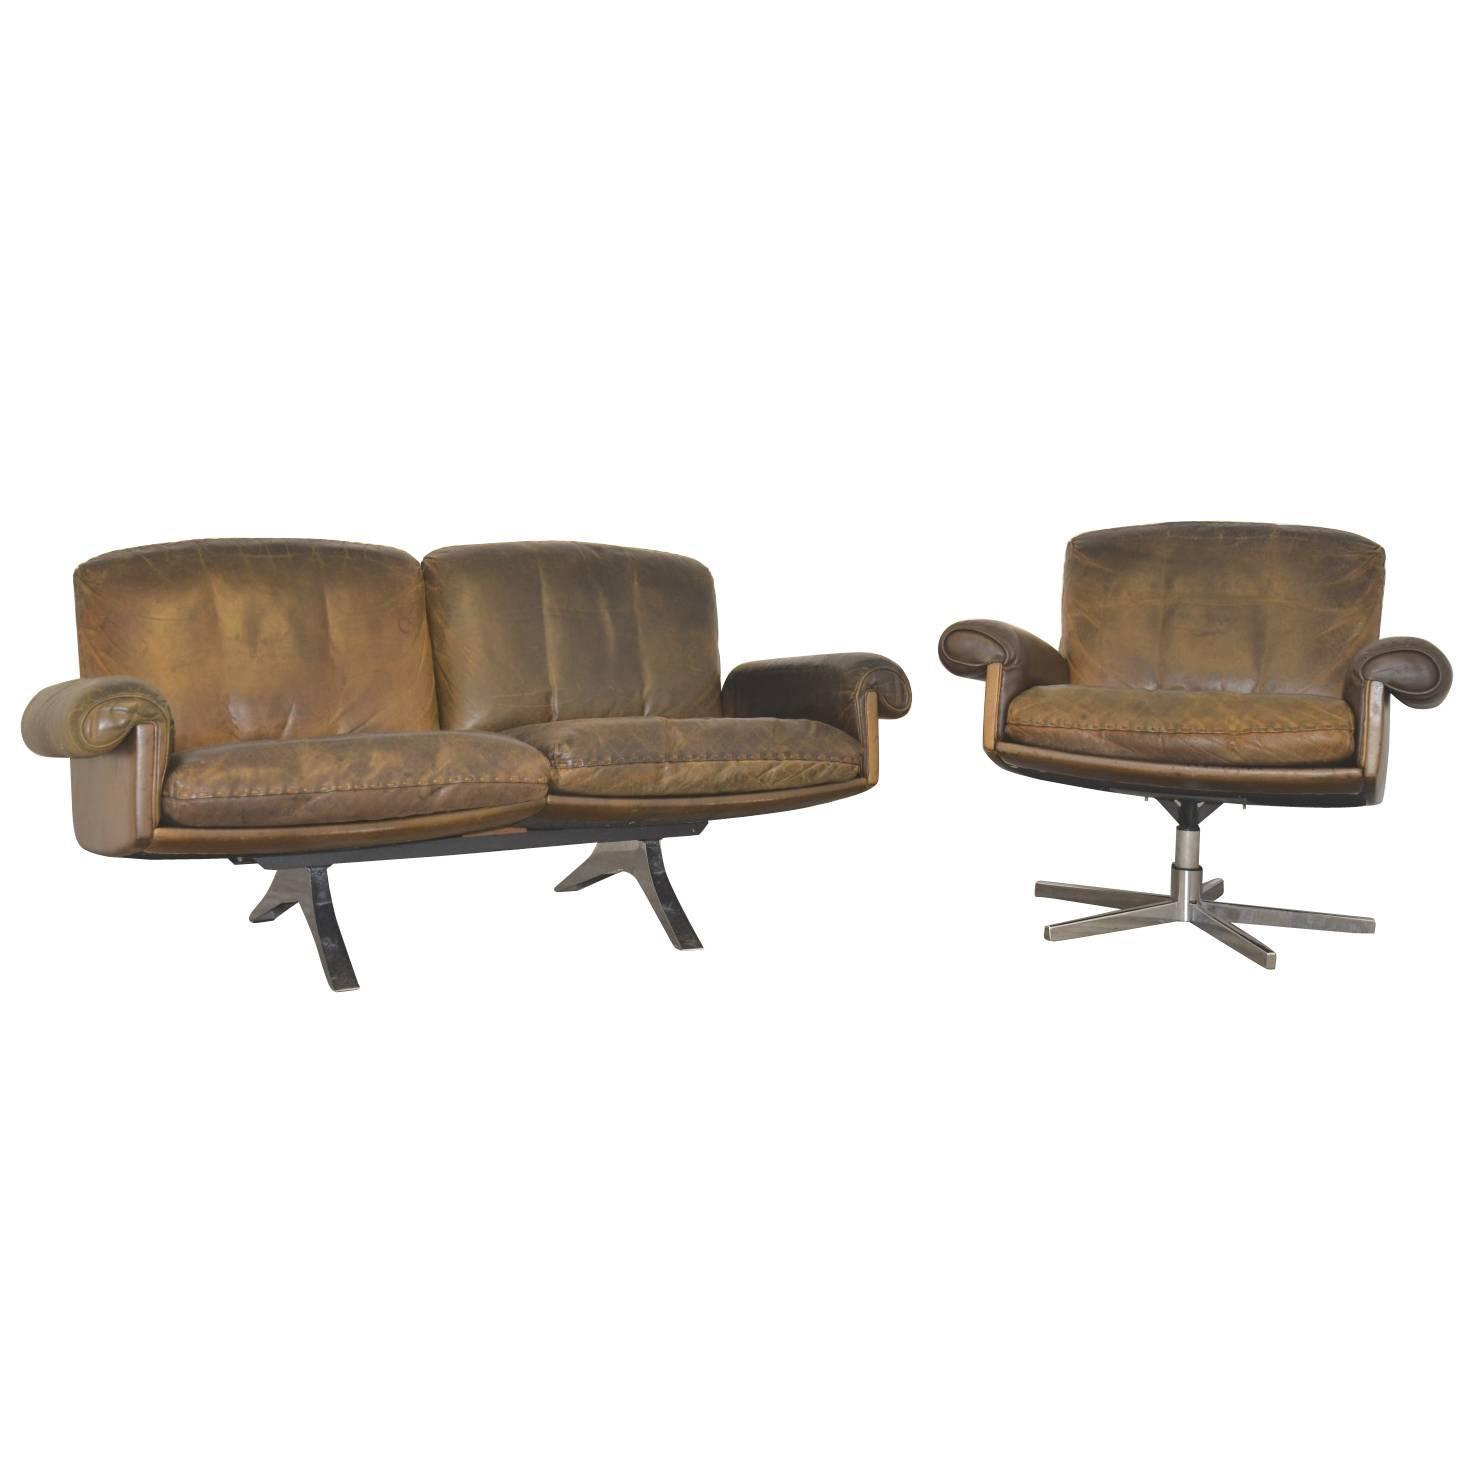 Vintage De Sede Ds 31 Two Seat Sofa And Swivel Club Armchair 1970s For Sale At 1stdibs